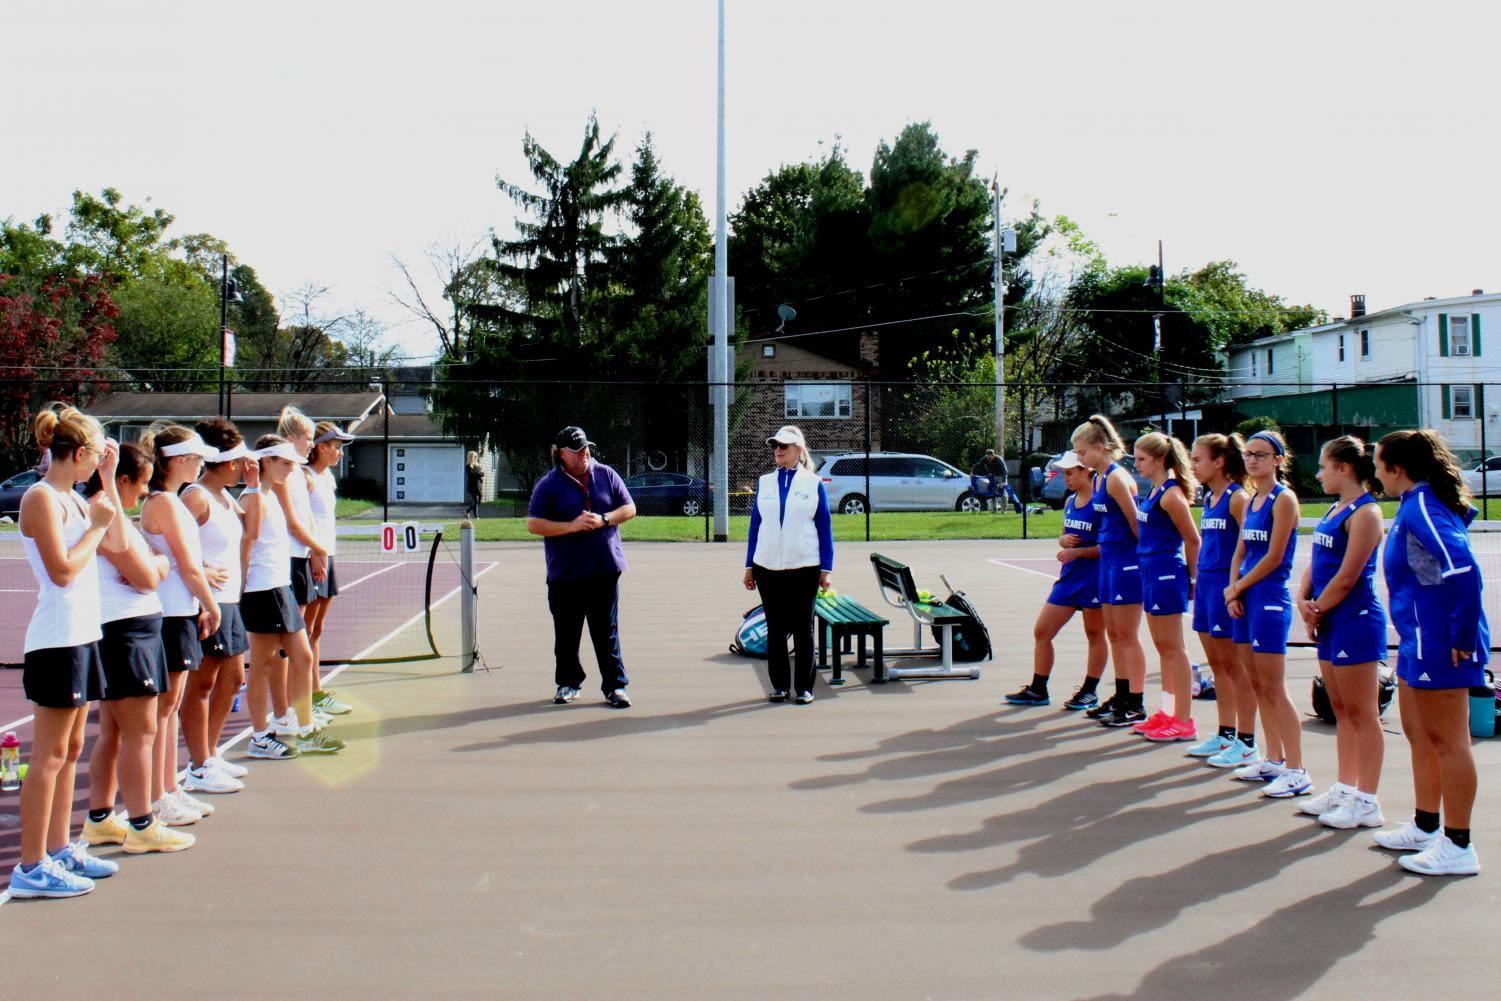 The girls' Varisty tennis team and Nazareth tennis team lining up to introduce each player and their position.